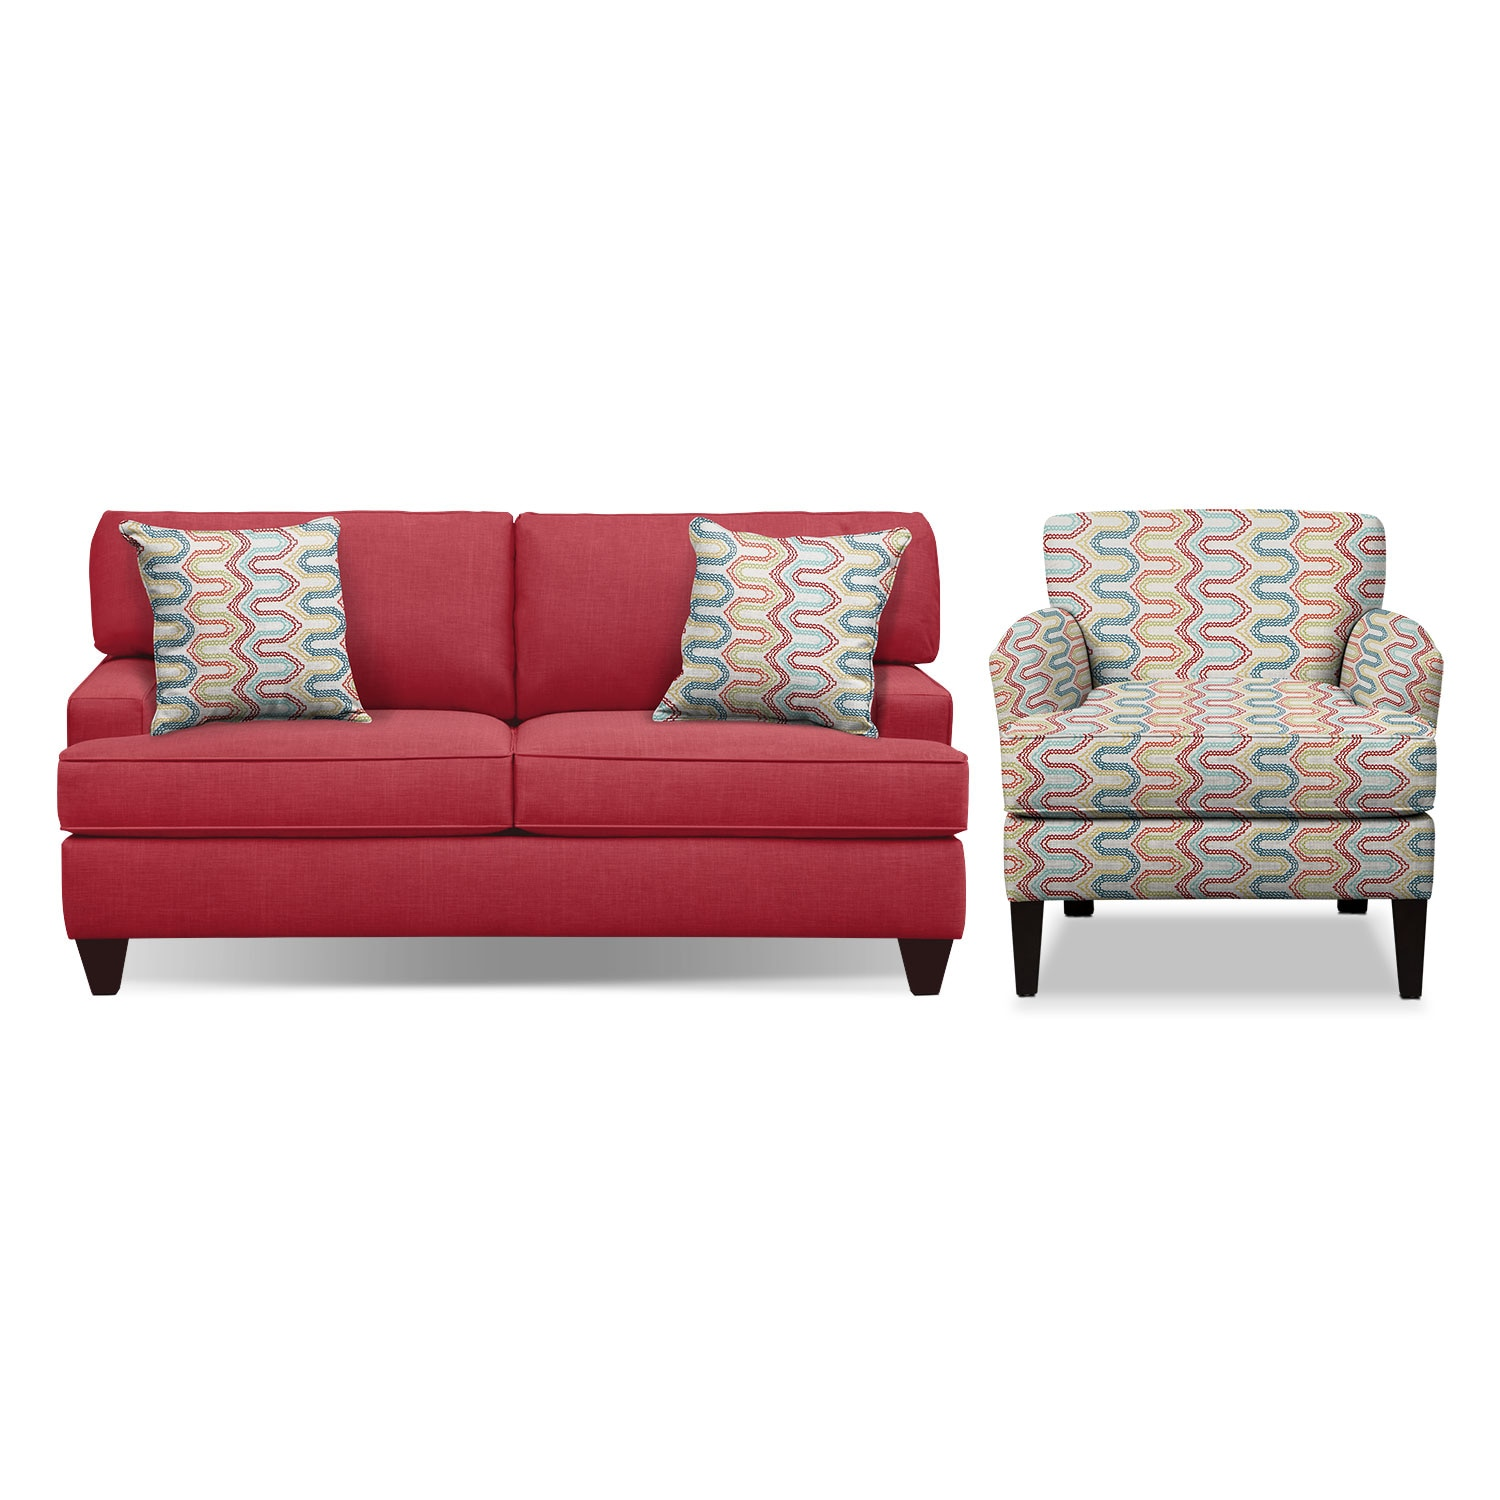 "Conner Red 75"" Sofa and Accent Chair Set"